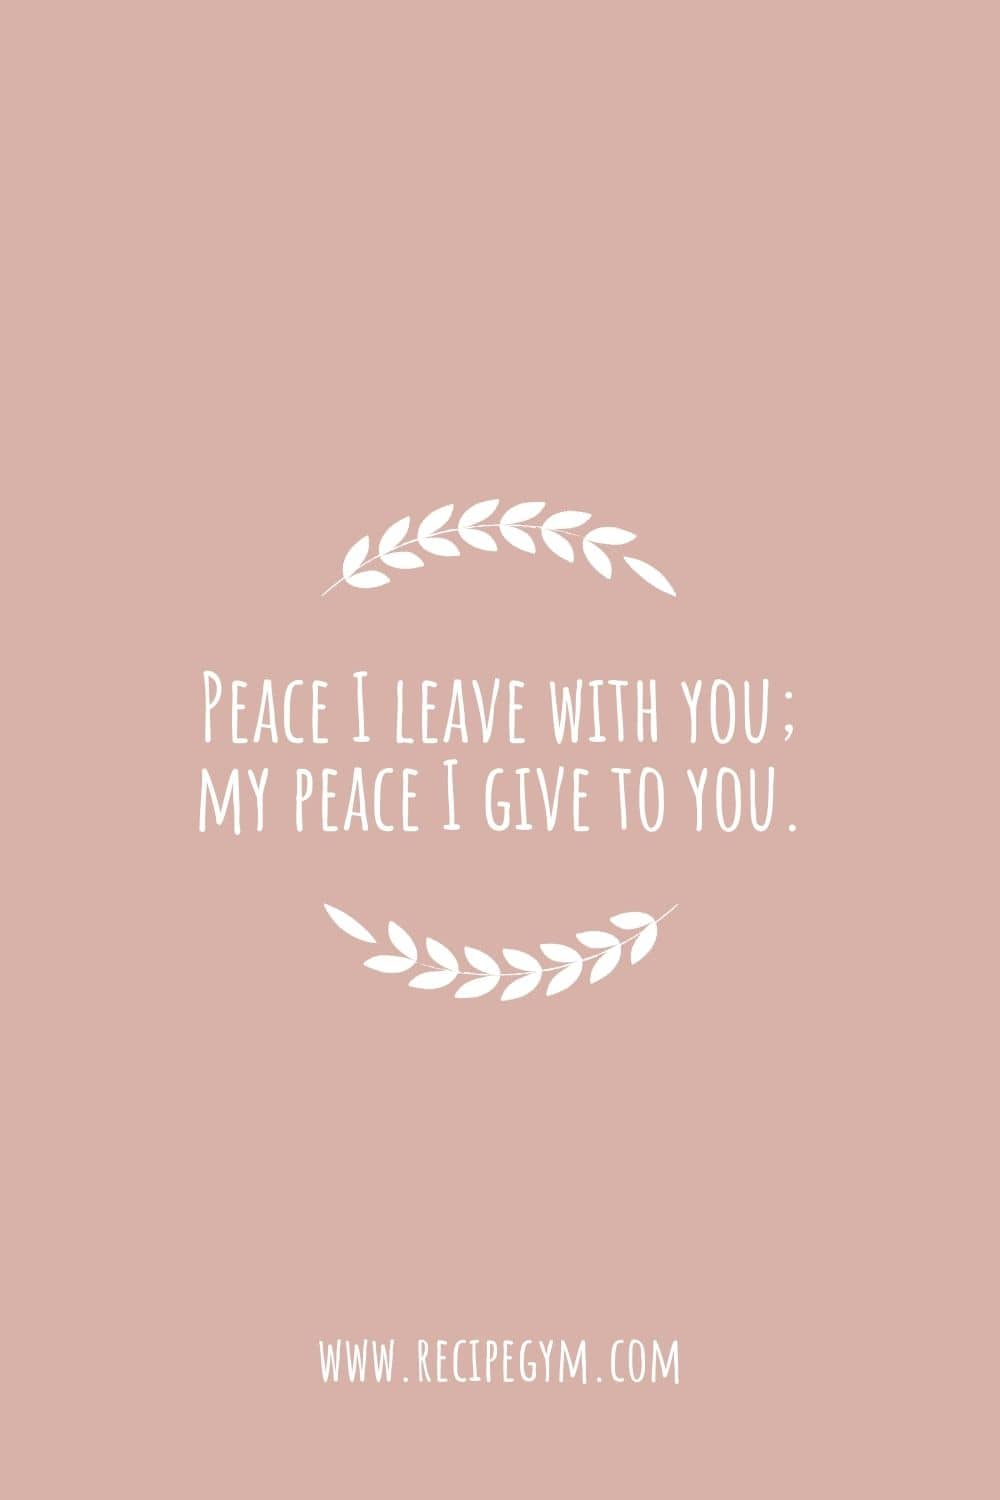 Bible verses about peace inspirational quotes about peace bible scriptures on peace